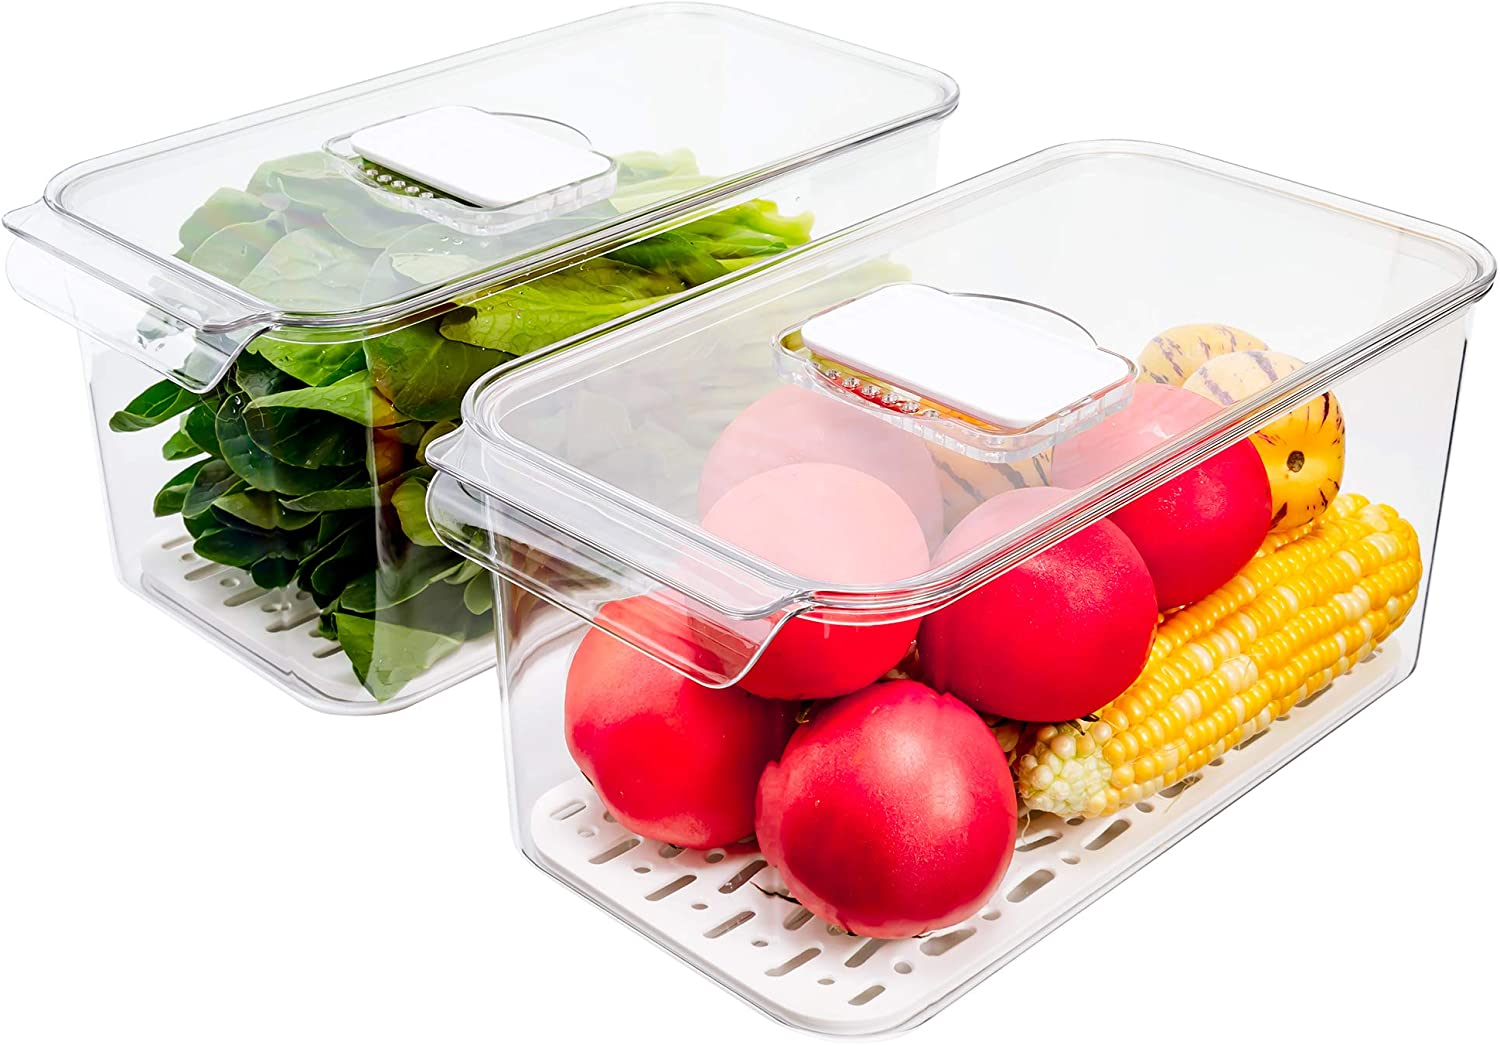 SANNO Produce Saver Refrigerator Organizer Bins with Lids And Removable Drain Tray Food Storage Container Fridge Stackable Freezer Bins For Kitchen Produce Fruit Vegetable (Set of 2)